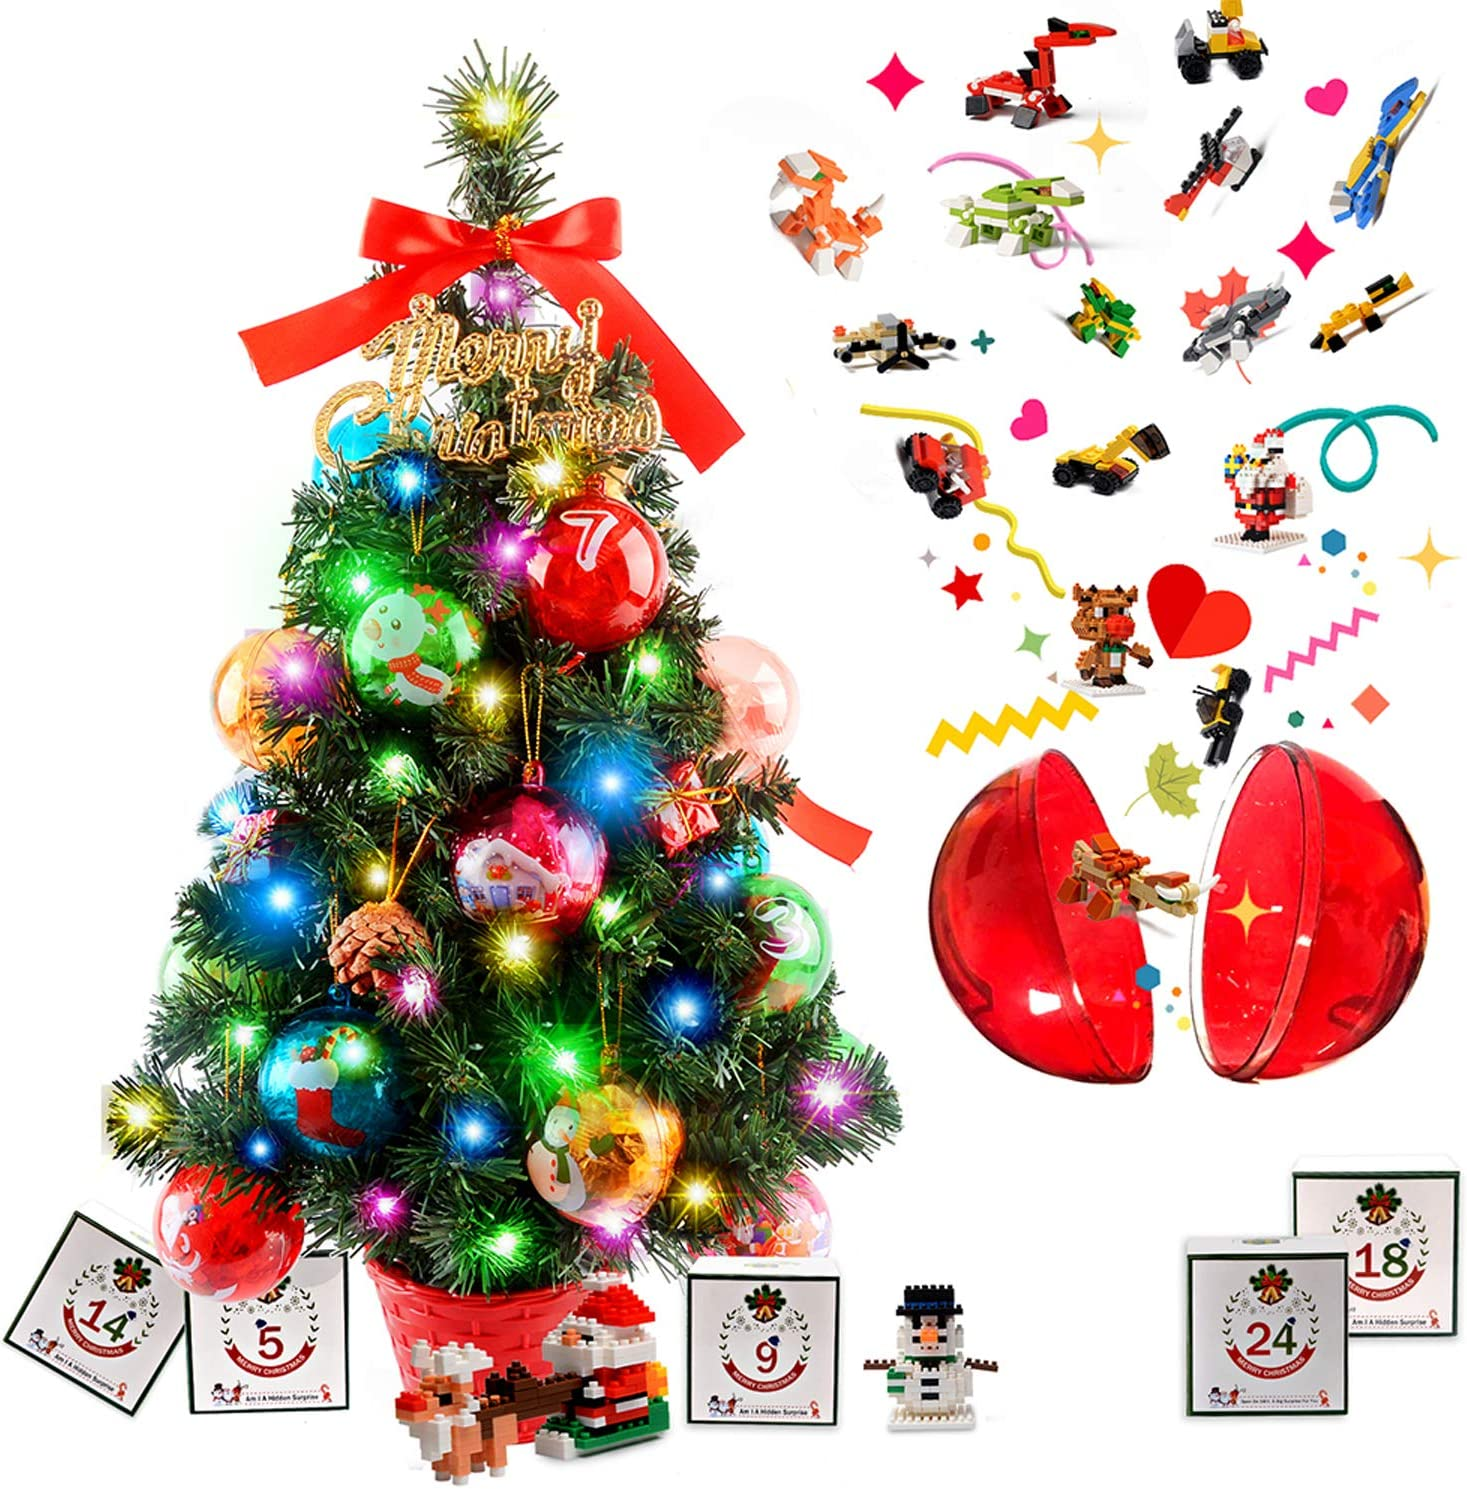 N-B Tabletop Christmas Tree Xmas Tree Christmas Advent Calendar for Kids Mini Christmas Tree with Lights & 36 PCS DIY Ornaments(Blind Box & Countdown Calendar)